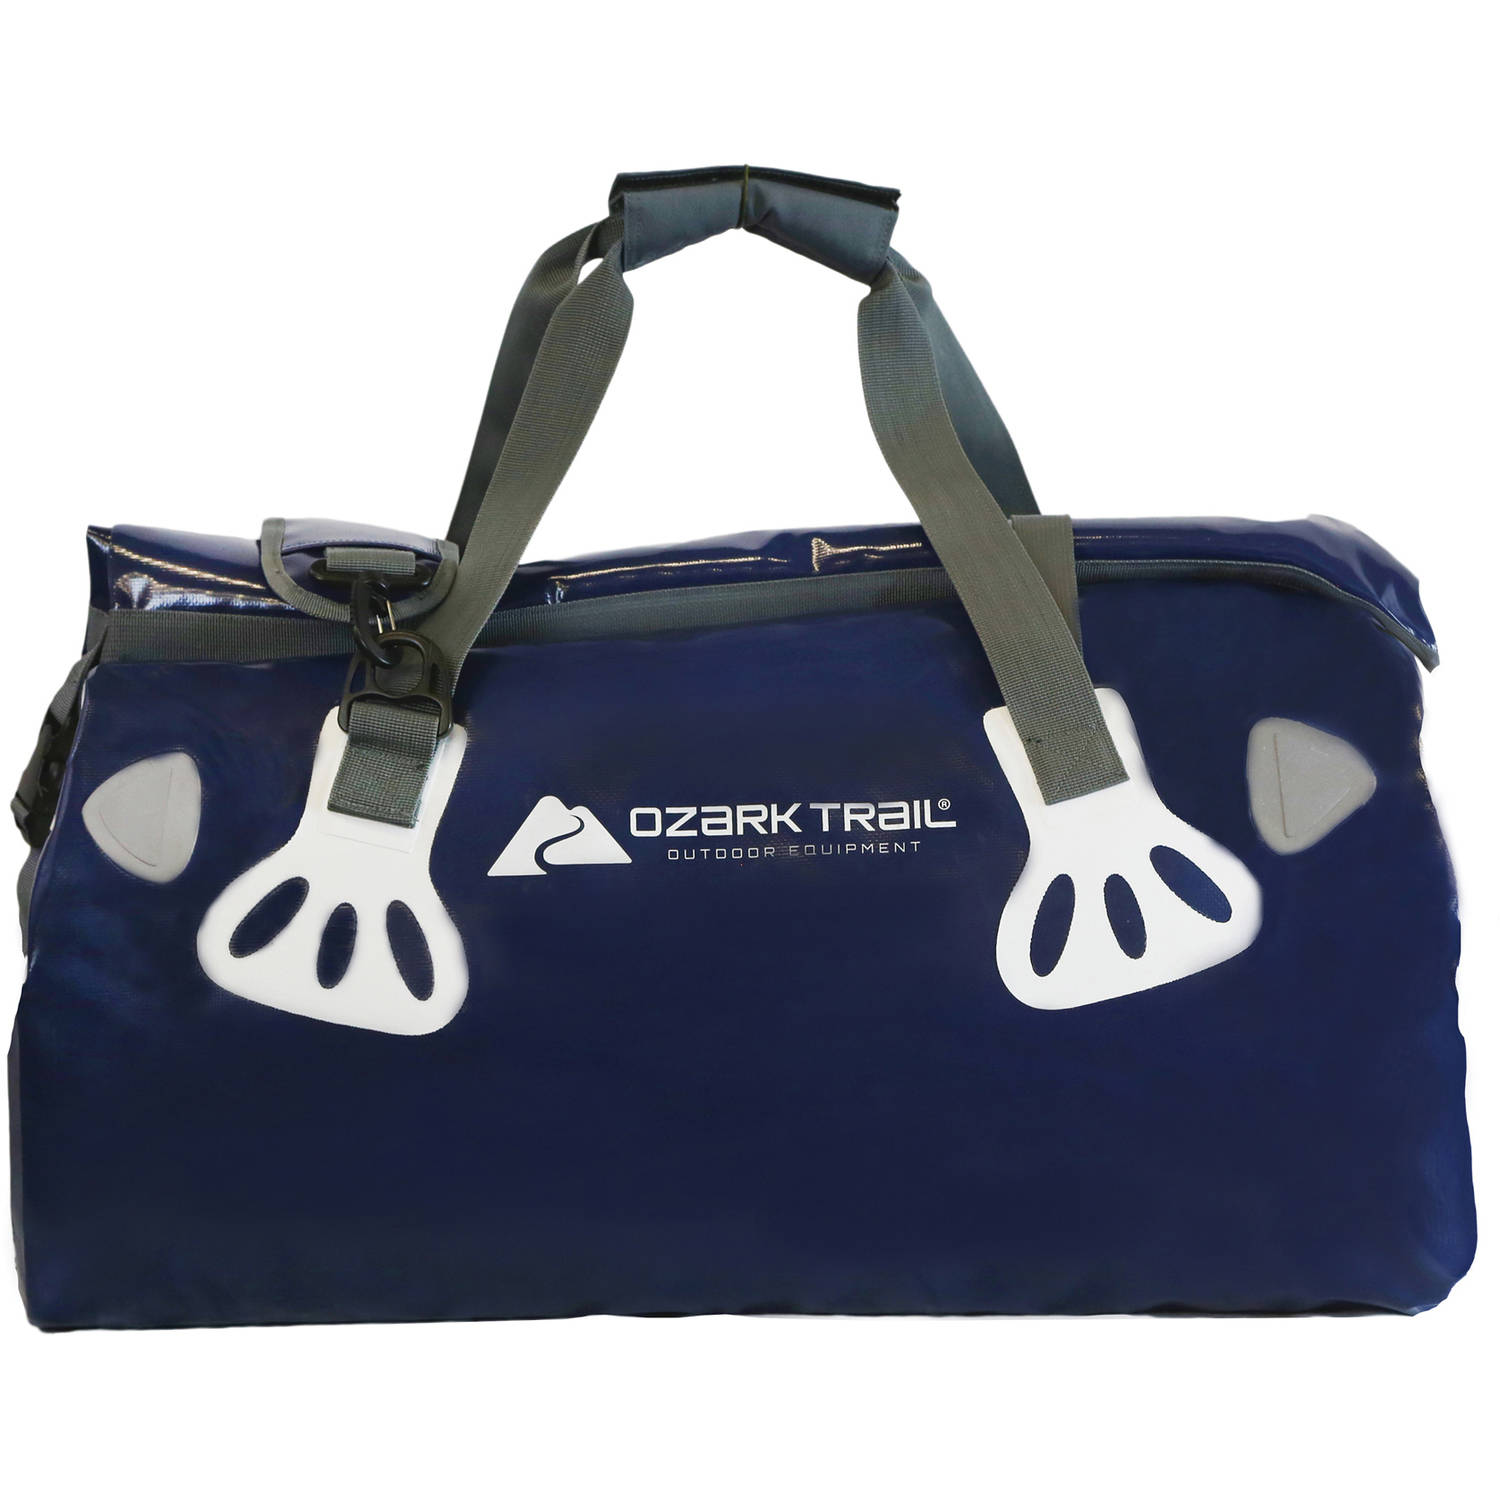 Ozark Trail 40L Dry Waterproof Bag Duffel with Shoulder Strap